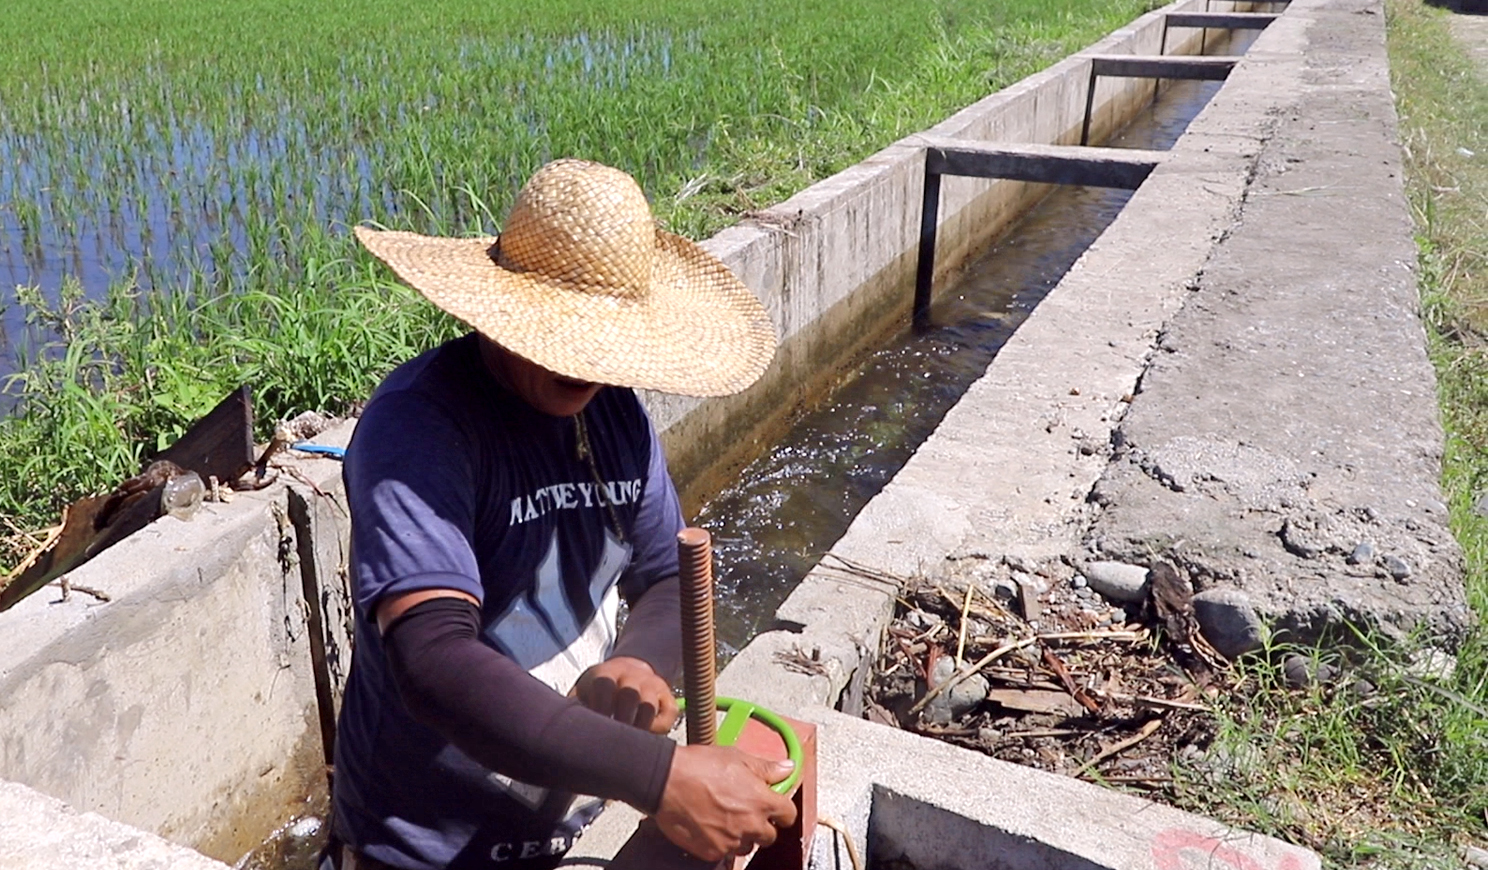 A member of the Jose Aniban Irrigators' Association learns the operation of the irrigation canal steel gate handwheel after the turnover ceremony of the Laya West Communal Irrigation Project Phase 2. The farmers' group will now be in charge of the operation and maintenance of the irrigation system.